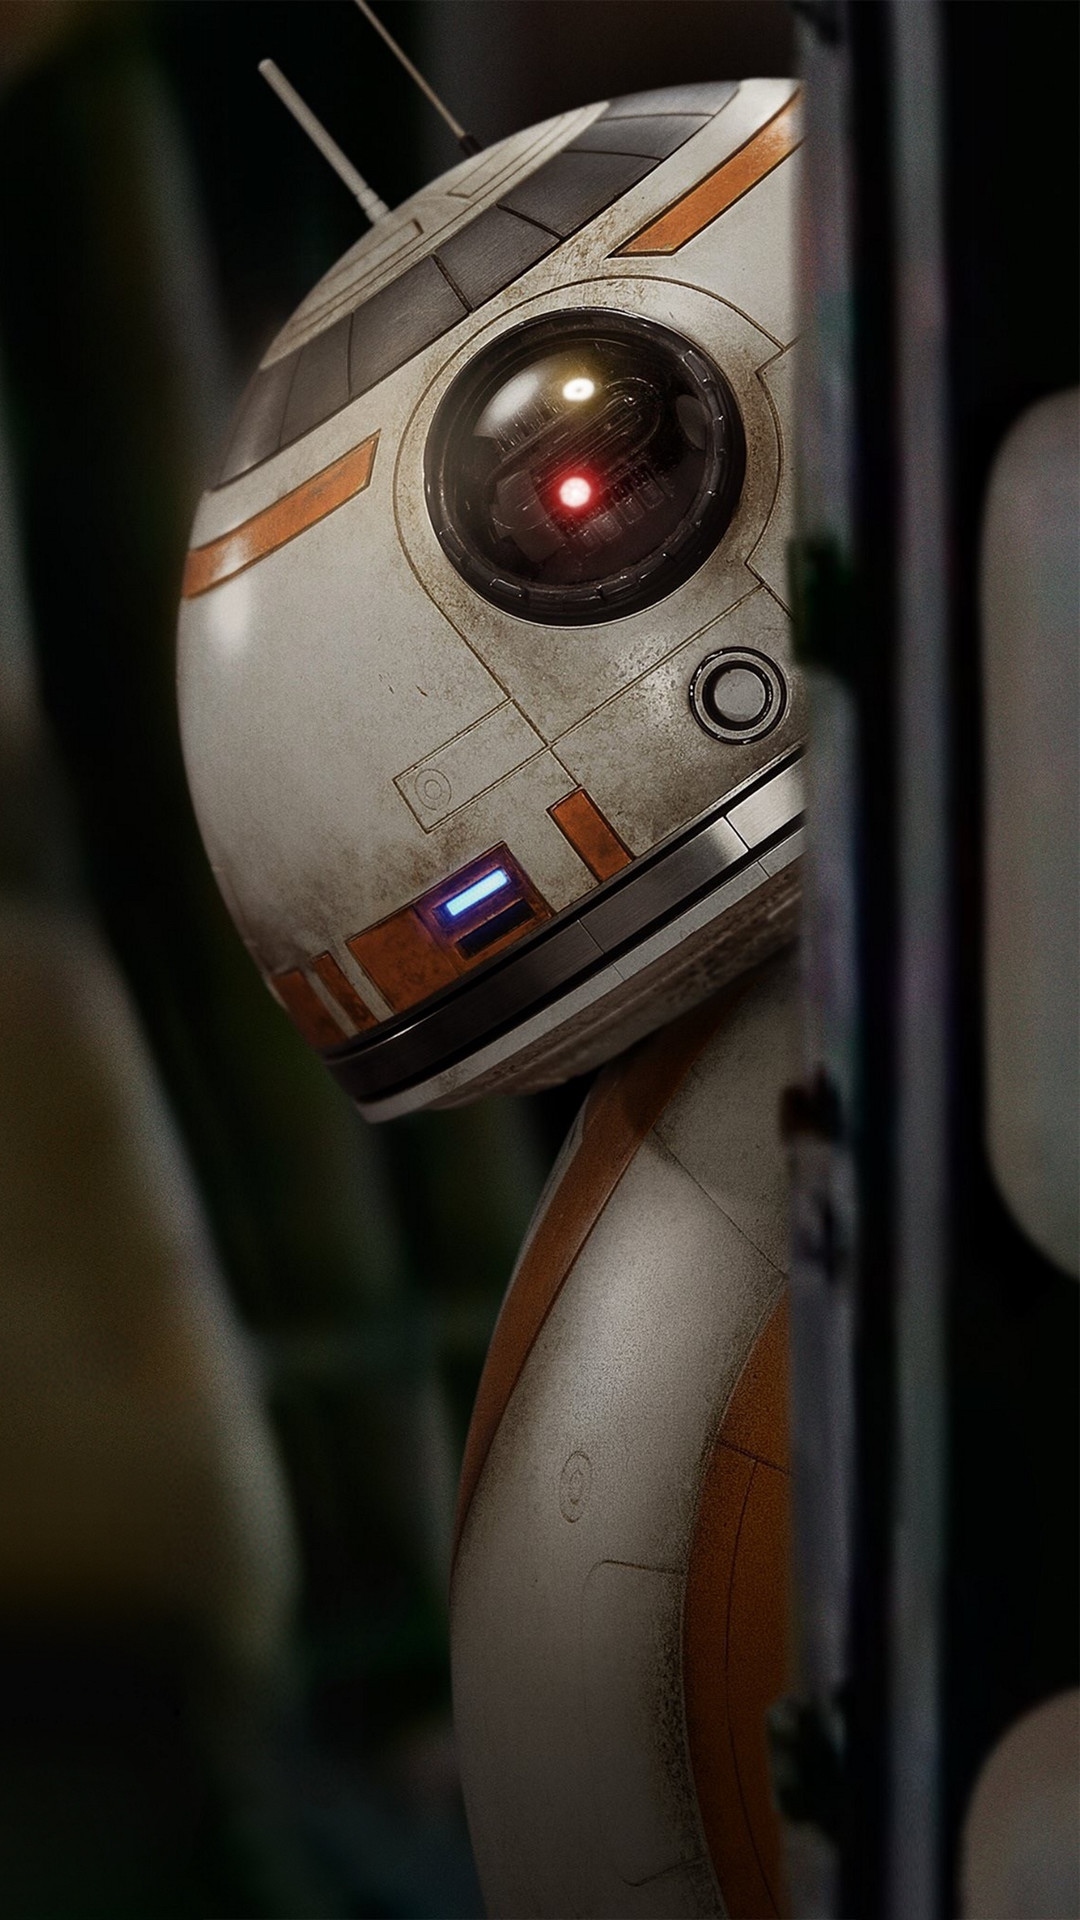 75 Bb8 Wallpapers on WallpaperPlay 1080x1920